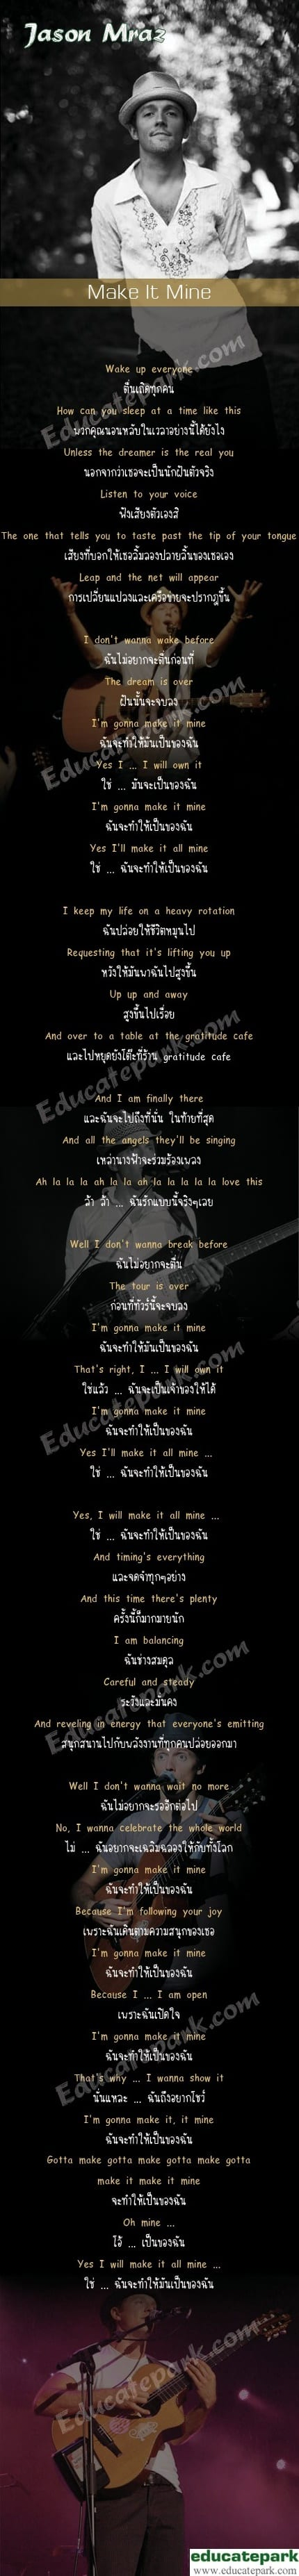 แปลเพลง Make It Mine - Jason Mraz